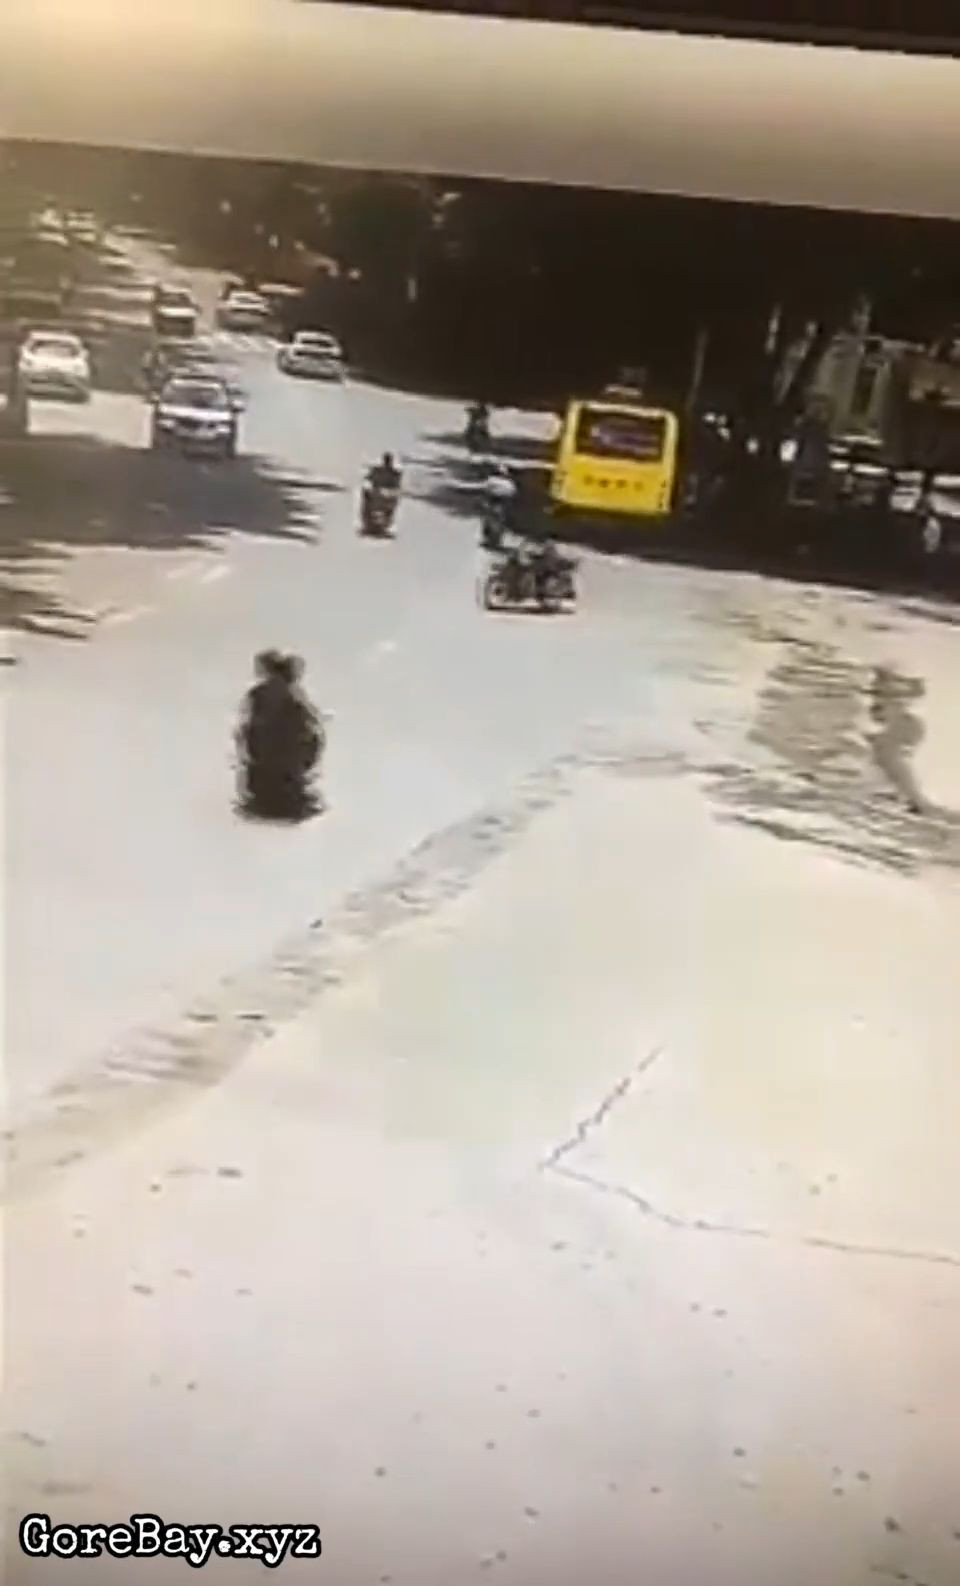 Scooter bumps into a bike and slams a bus 5